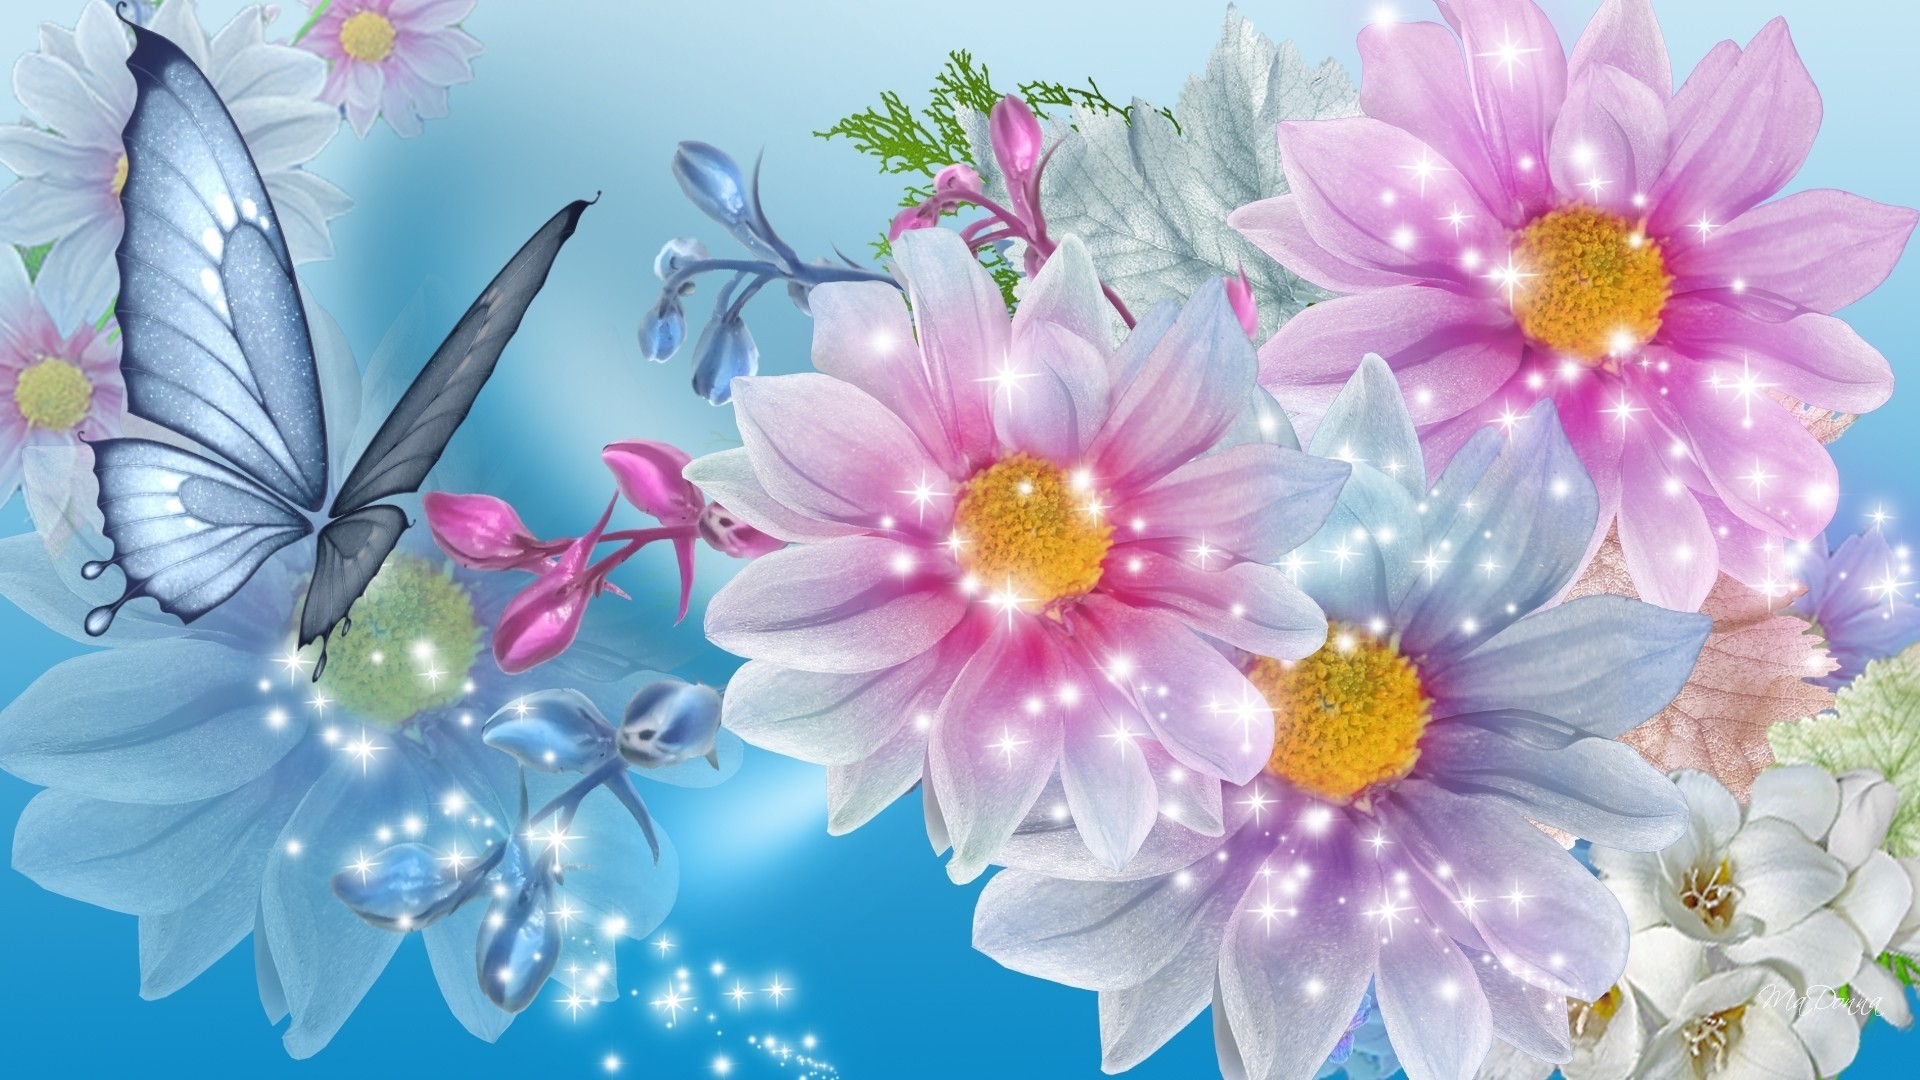 30 Beautiful Flower Wallpaper Free To Download